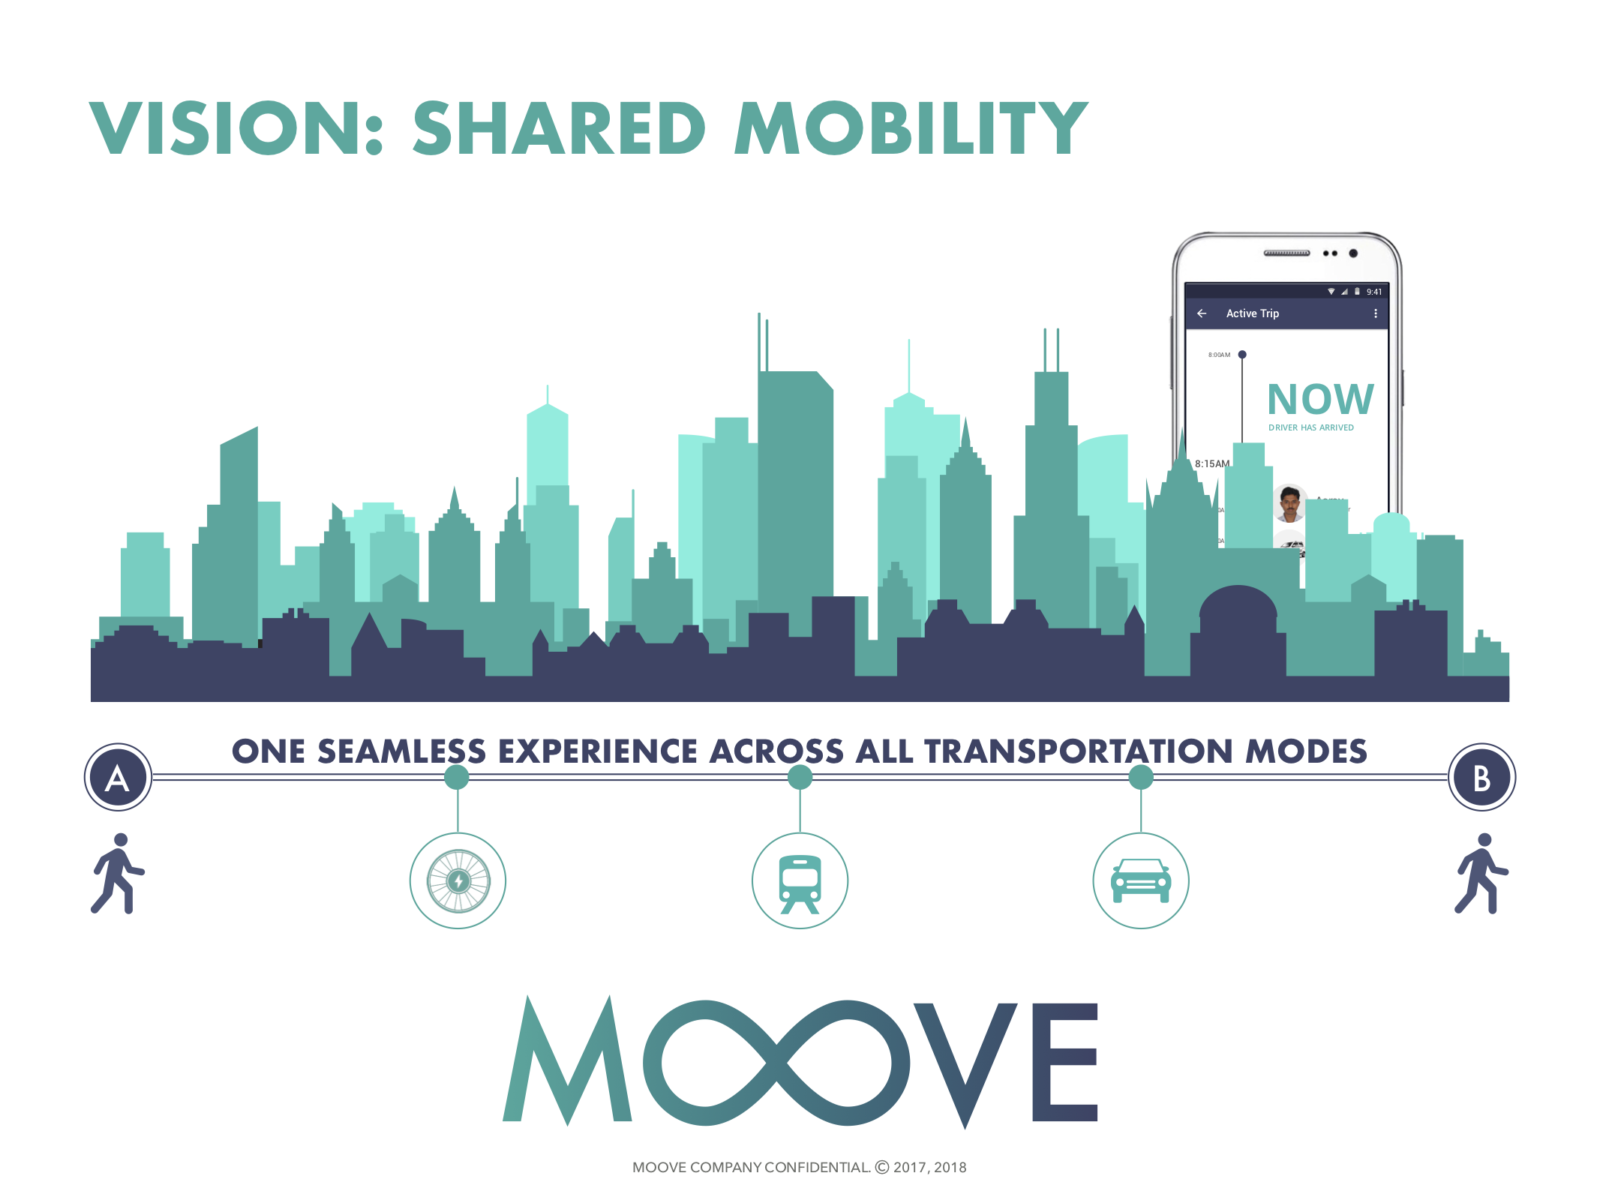 shared mobility – MOOVE